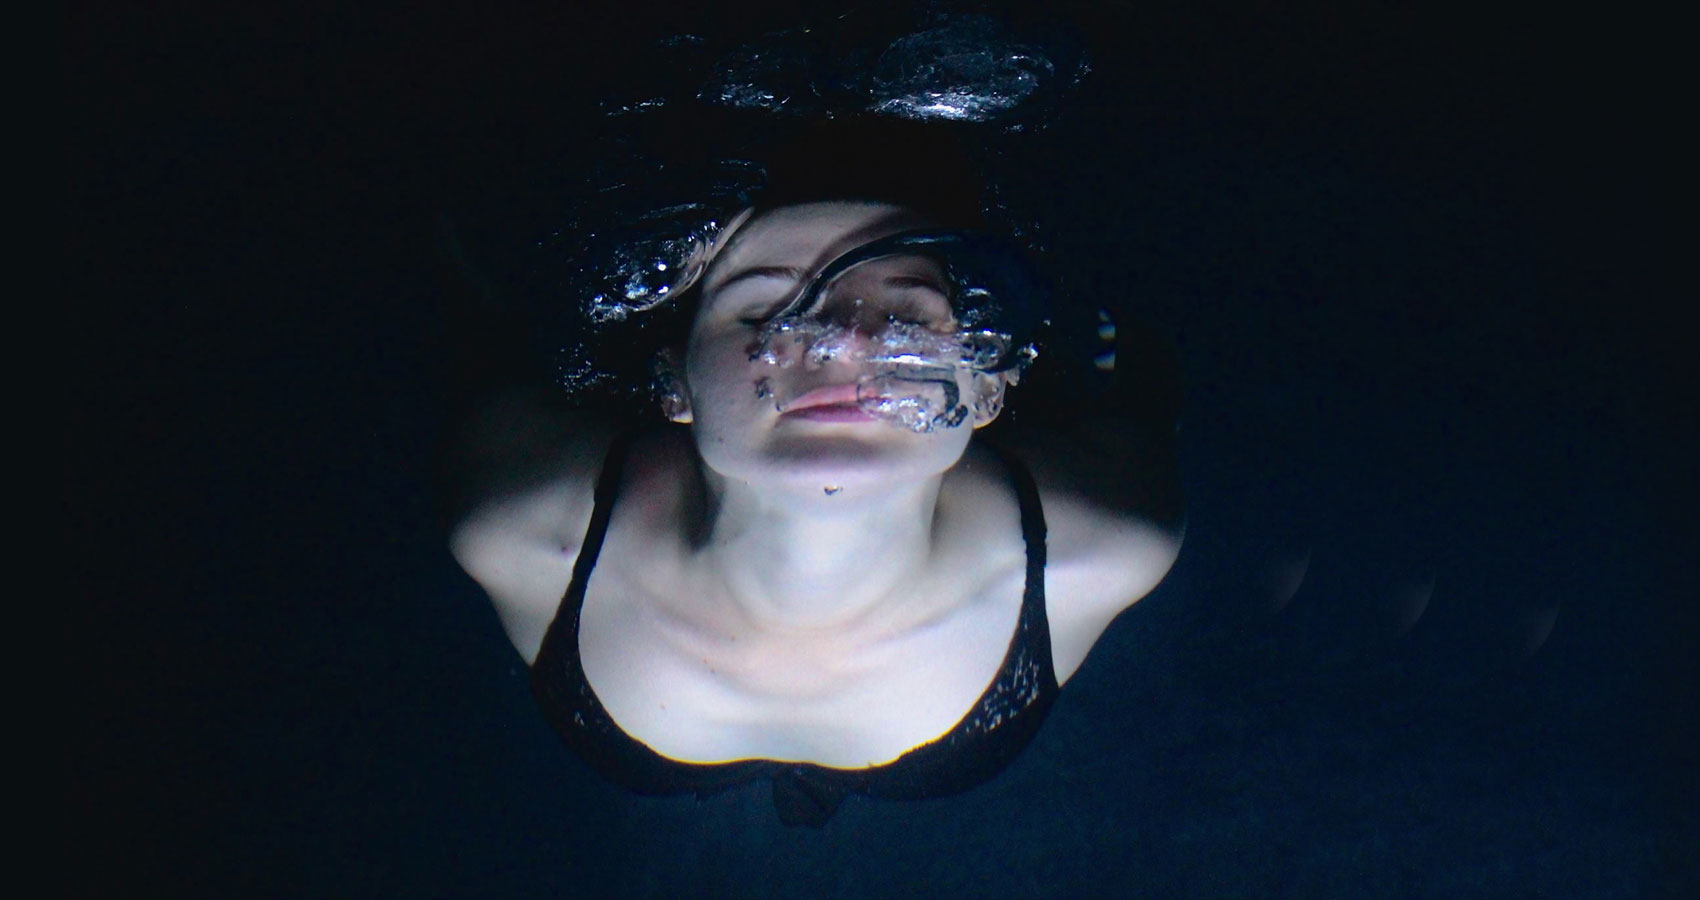 The Pool Of Darkness, a poem written by H.M. Gautsch at Spillwords.com